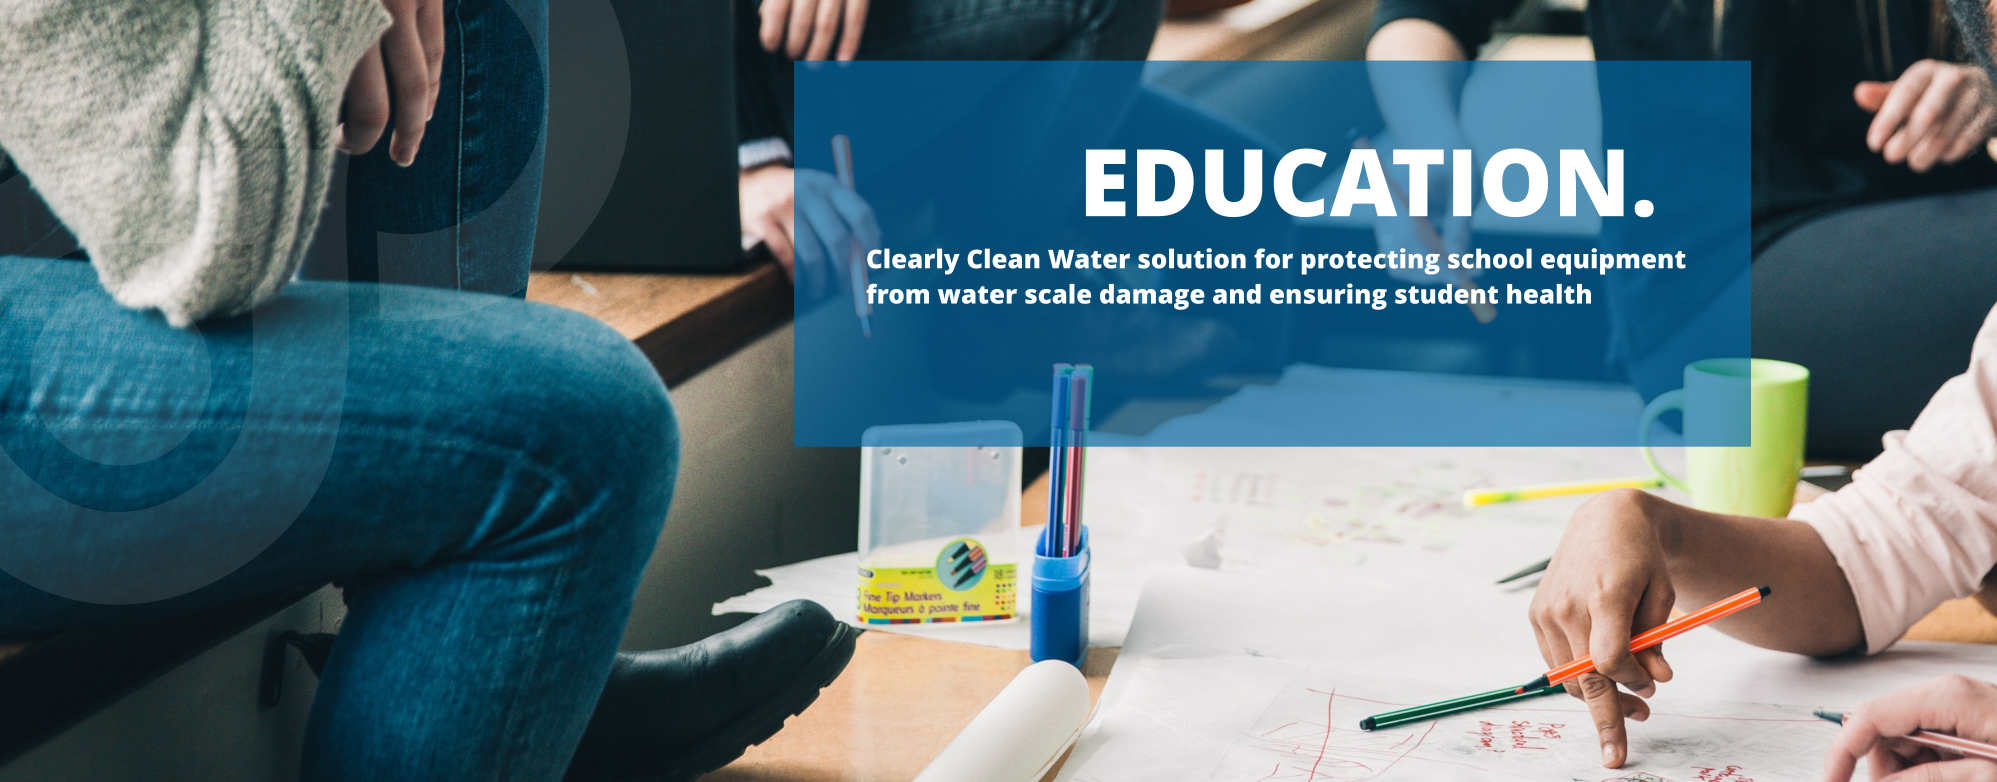 waslix water purification solution education